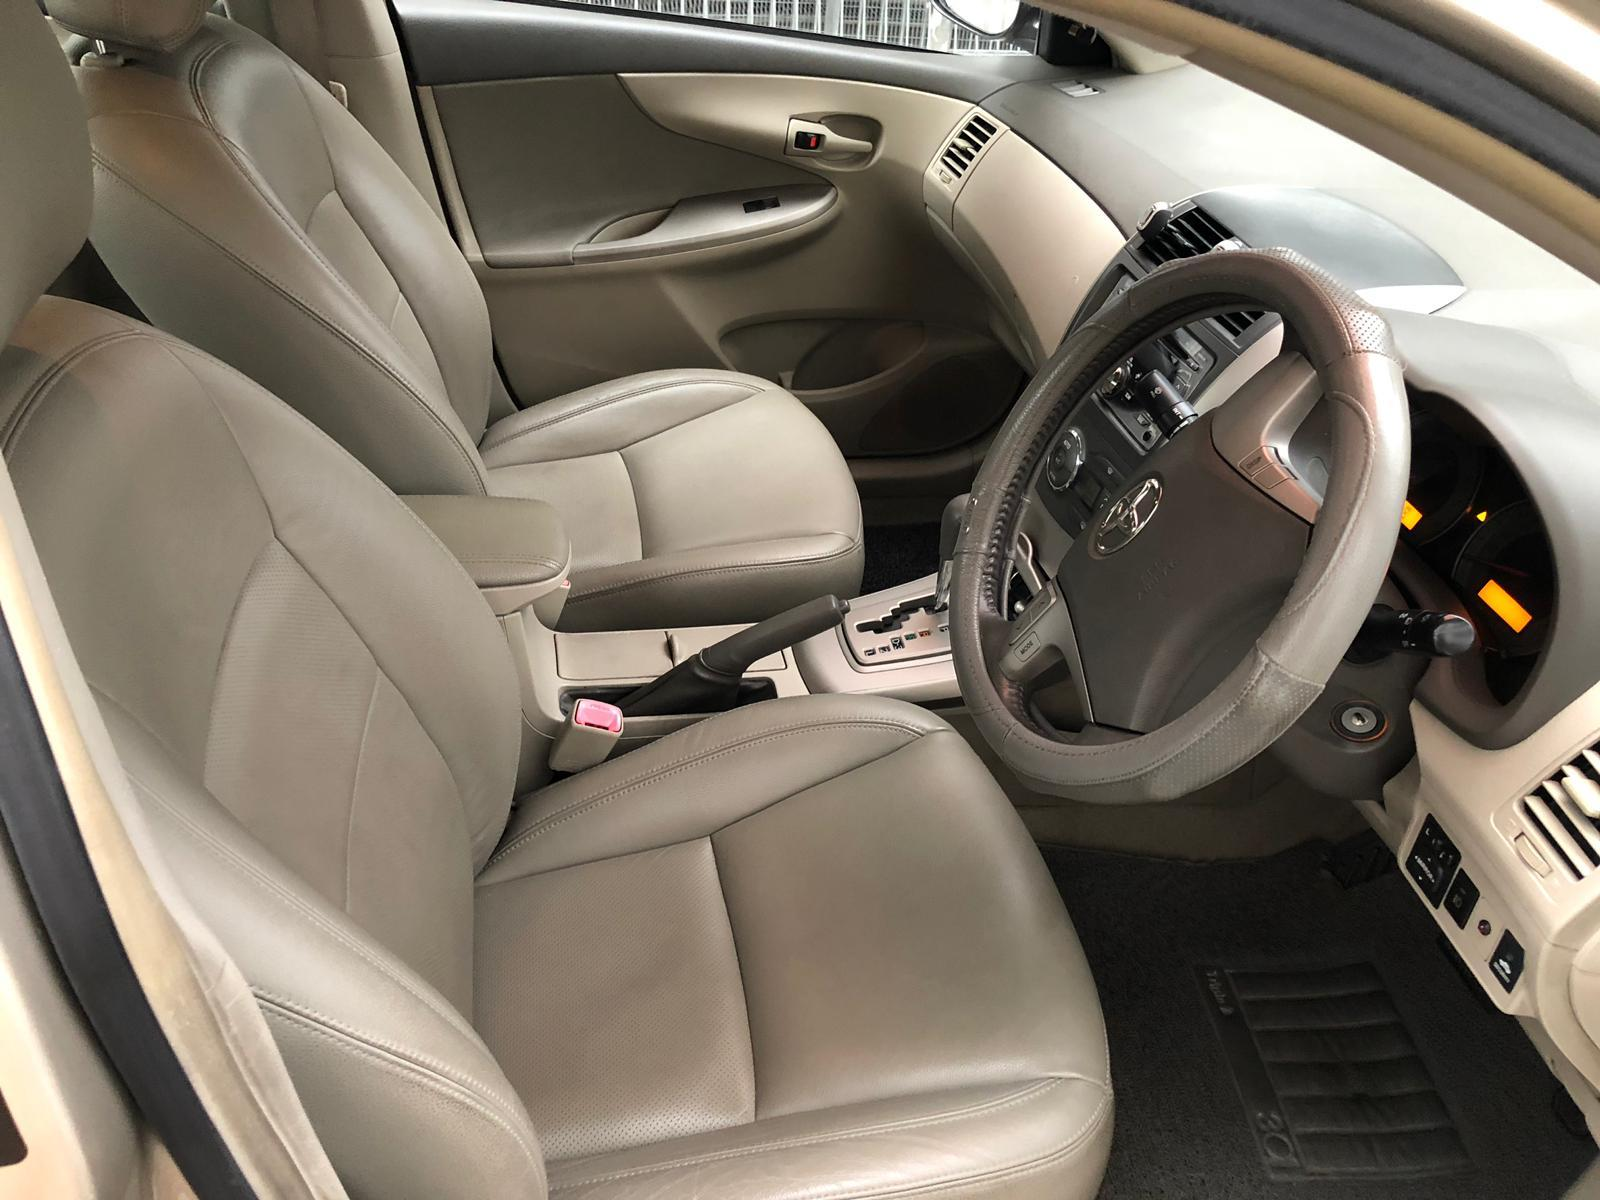 Toyota altis 1.6*TOP CONDITION  $50 Toyota Vios Wish Car Axio Premio Allion Camry  Honda Jazz Fit Civic Cars Hyundai Avante Mazda 3 2 For Rent Lease To Own Grab Rental Gojek Or Personal Use Low price and Cheap